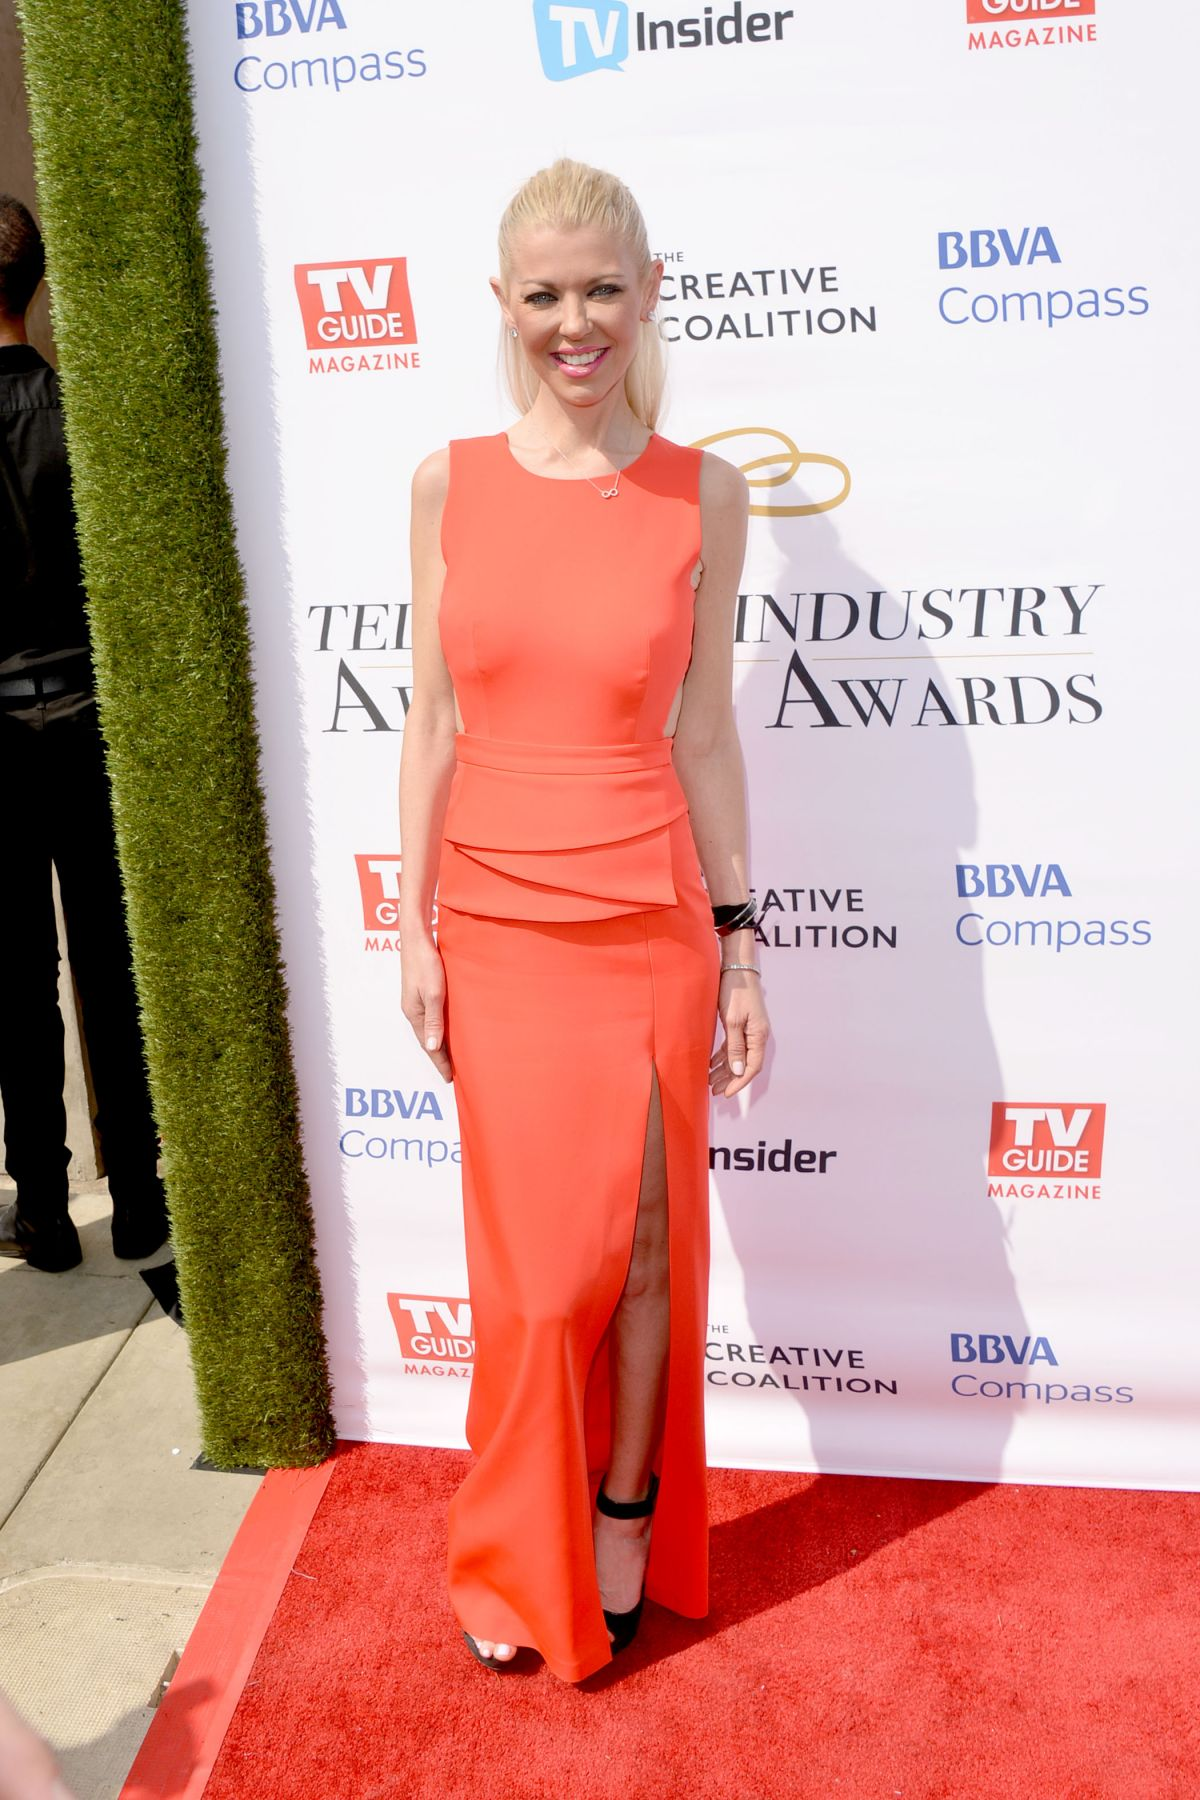 TARA REID at Television Industry Advocacy Awards in Hollywood 09/16/2017